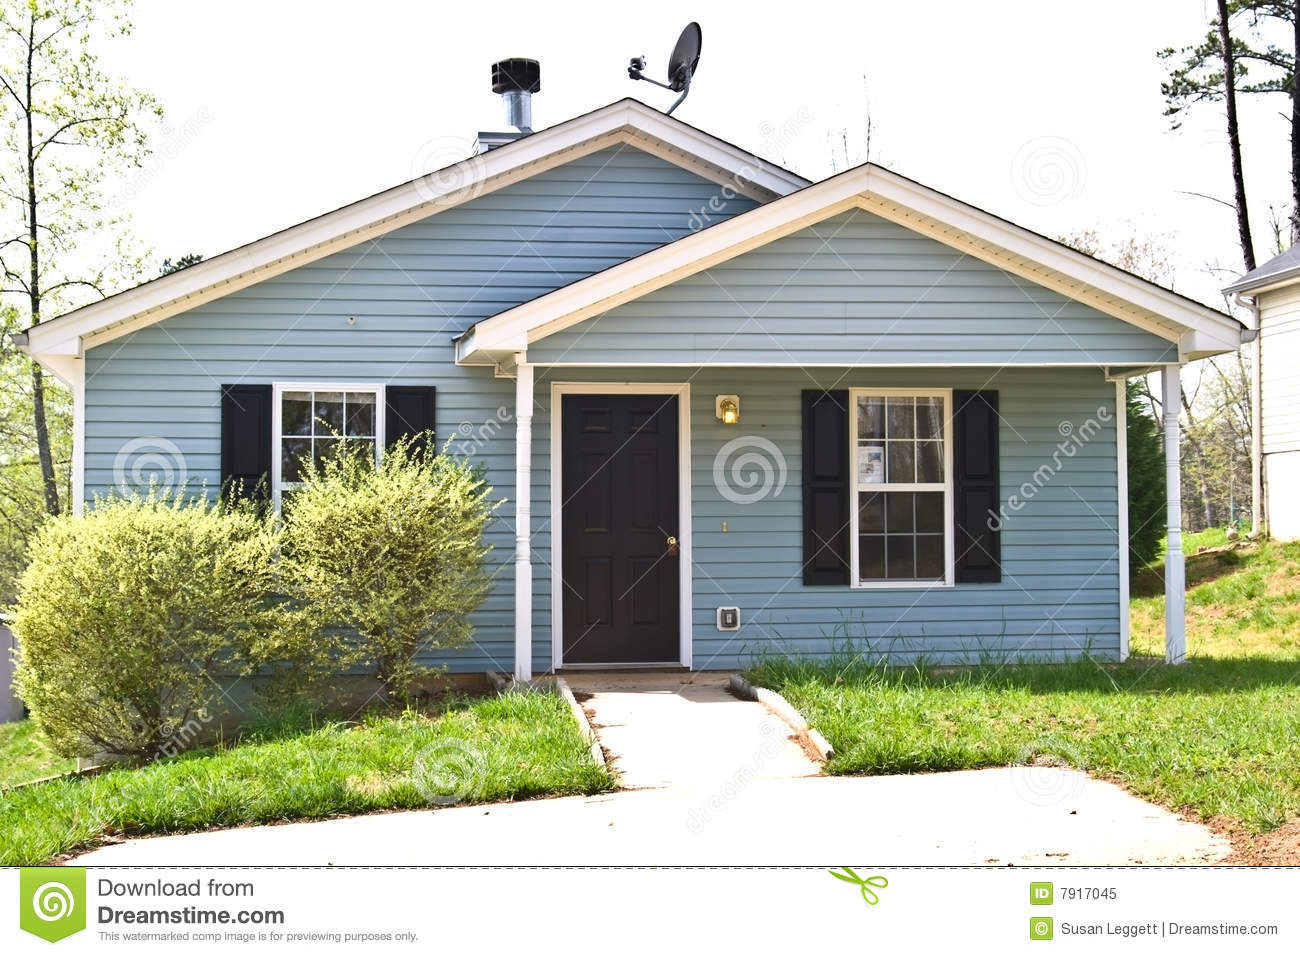 Small house for sale rent royalty free stock photo image 7917045 - Photo small house ...